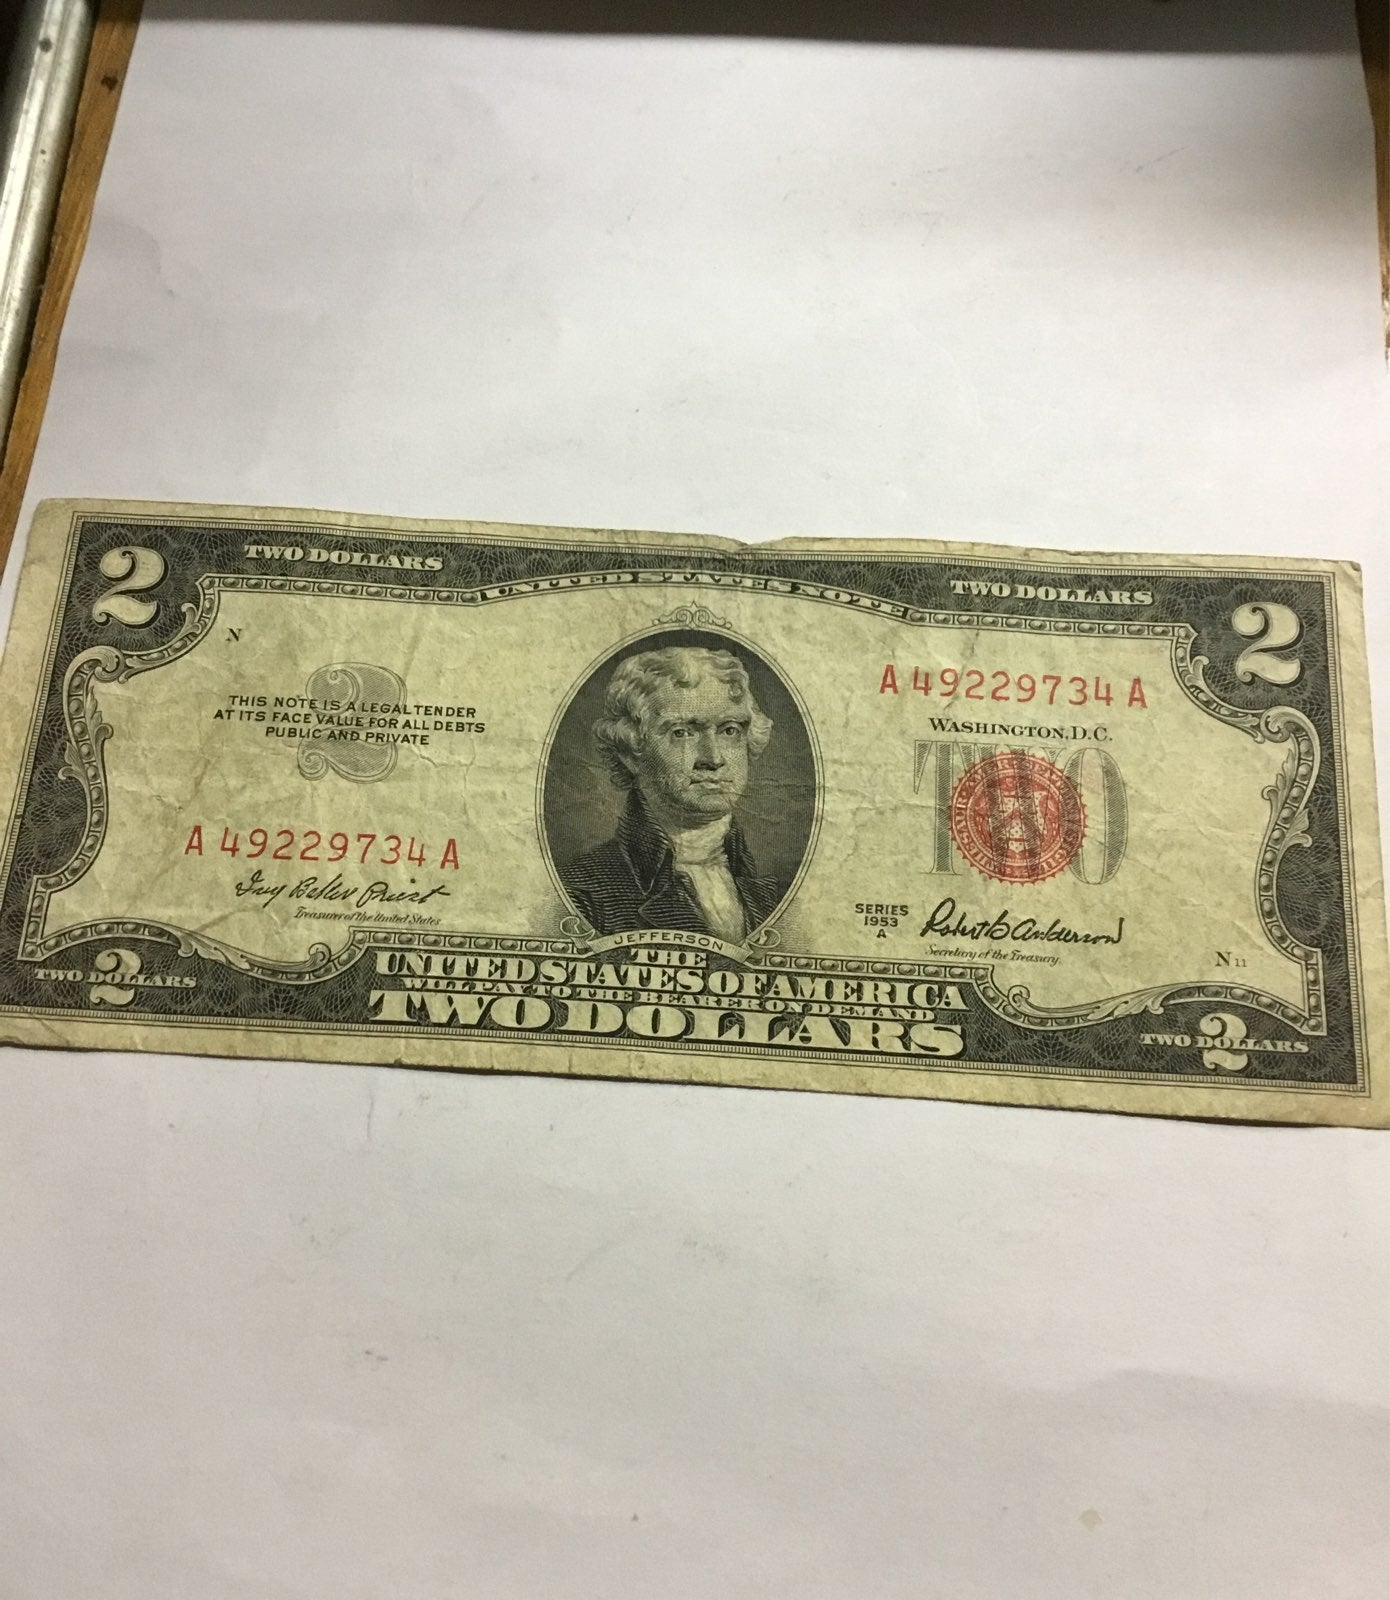 $2.00 bill US Note 1953 red seal